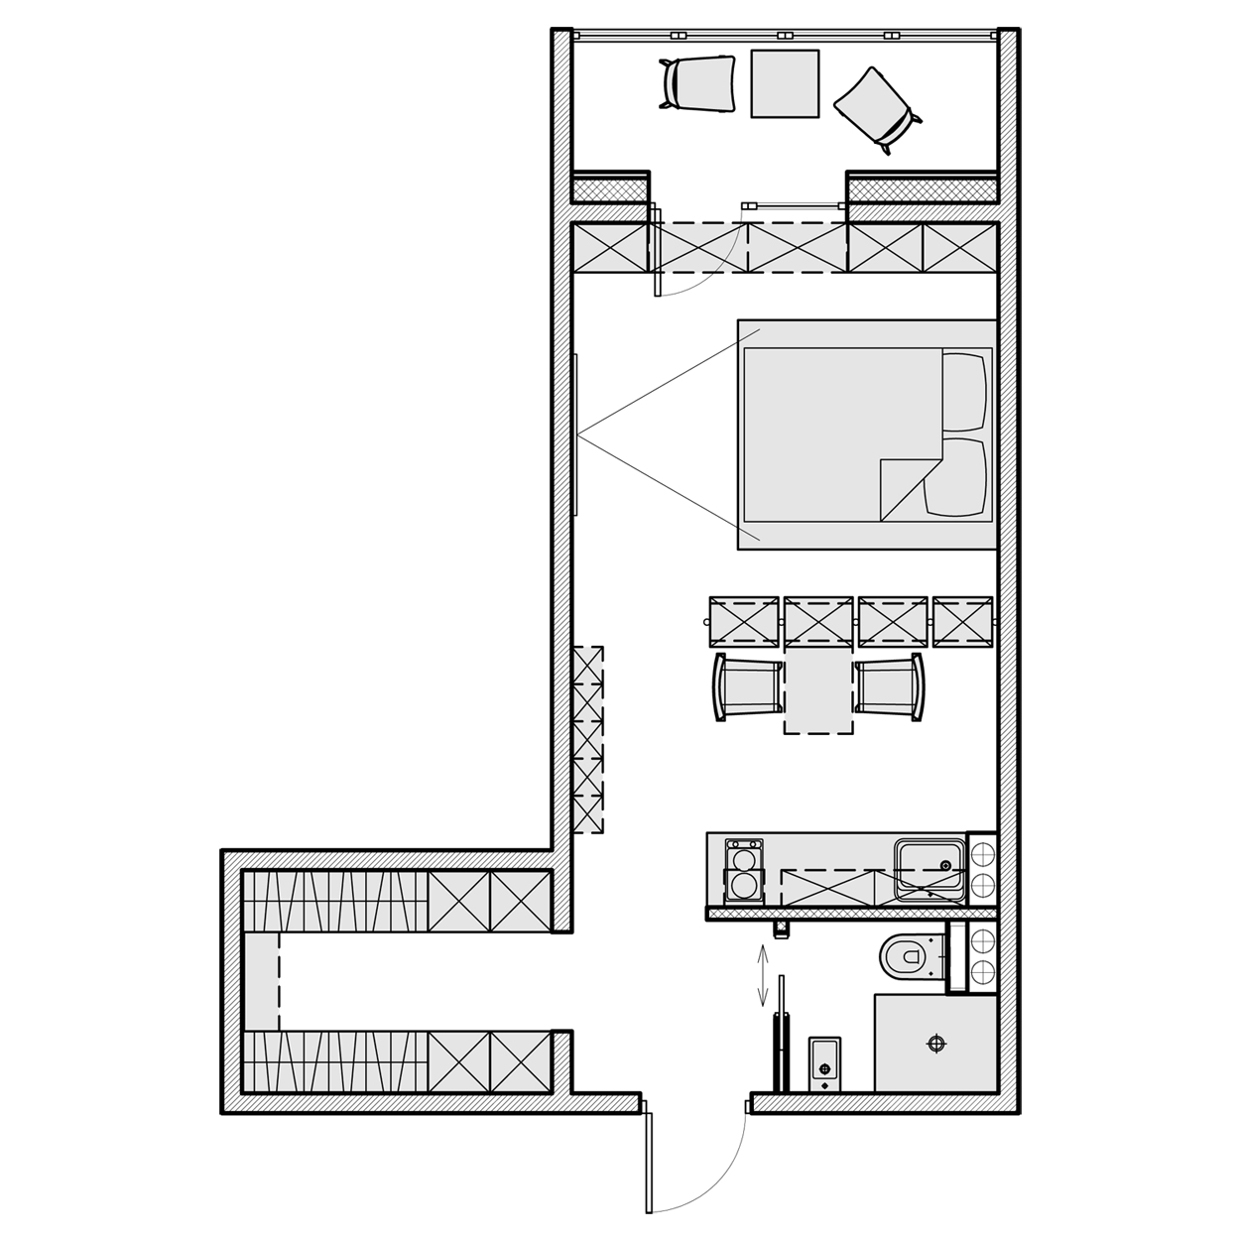 3 beautiful homes under 500 square feet for Small duplex house plans 400 sq ft